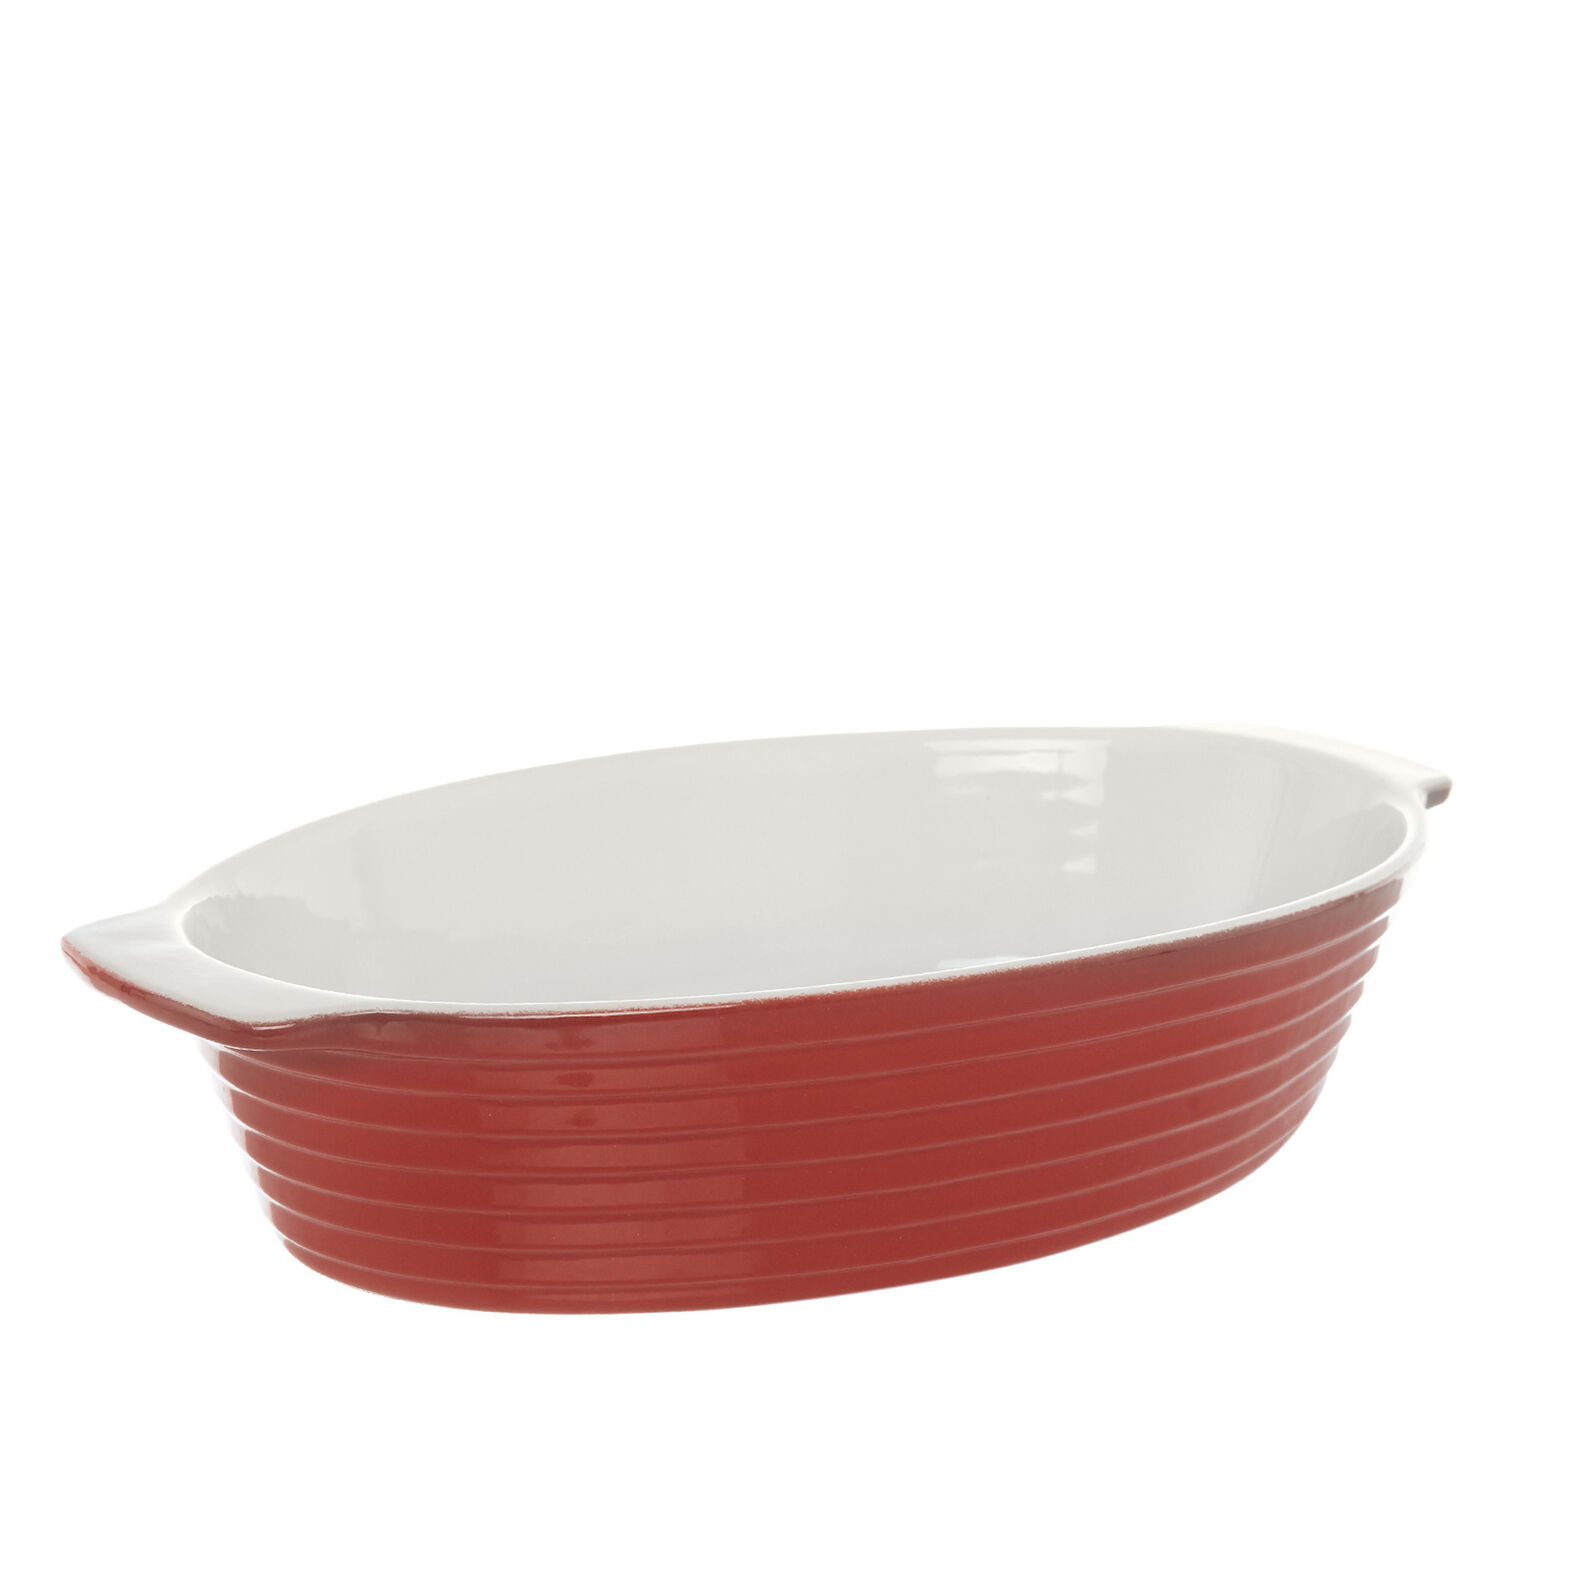 New bone china oval oven dish